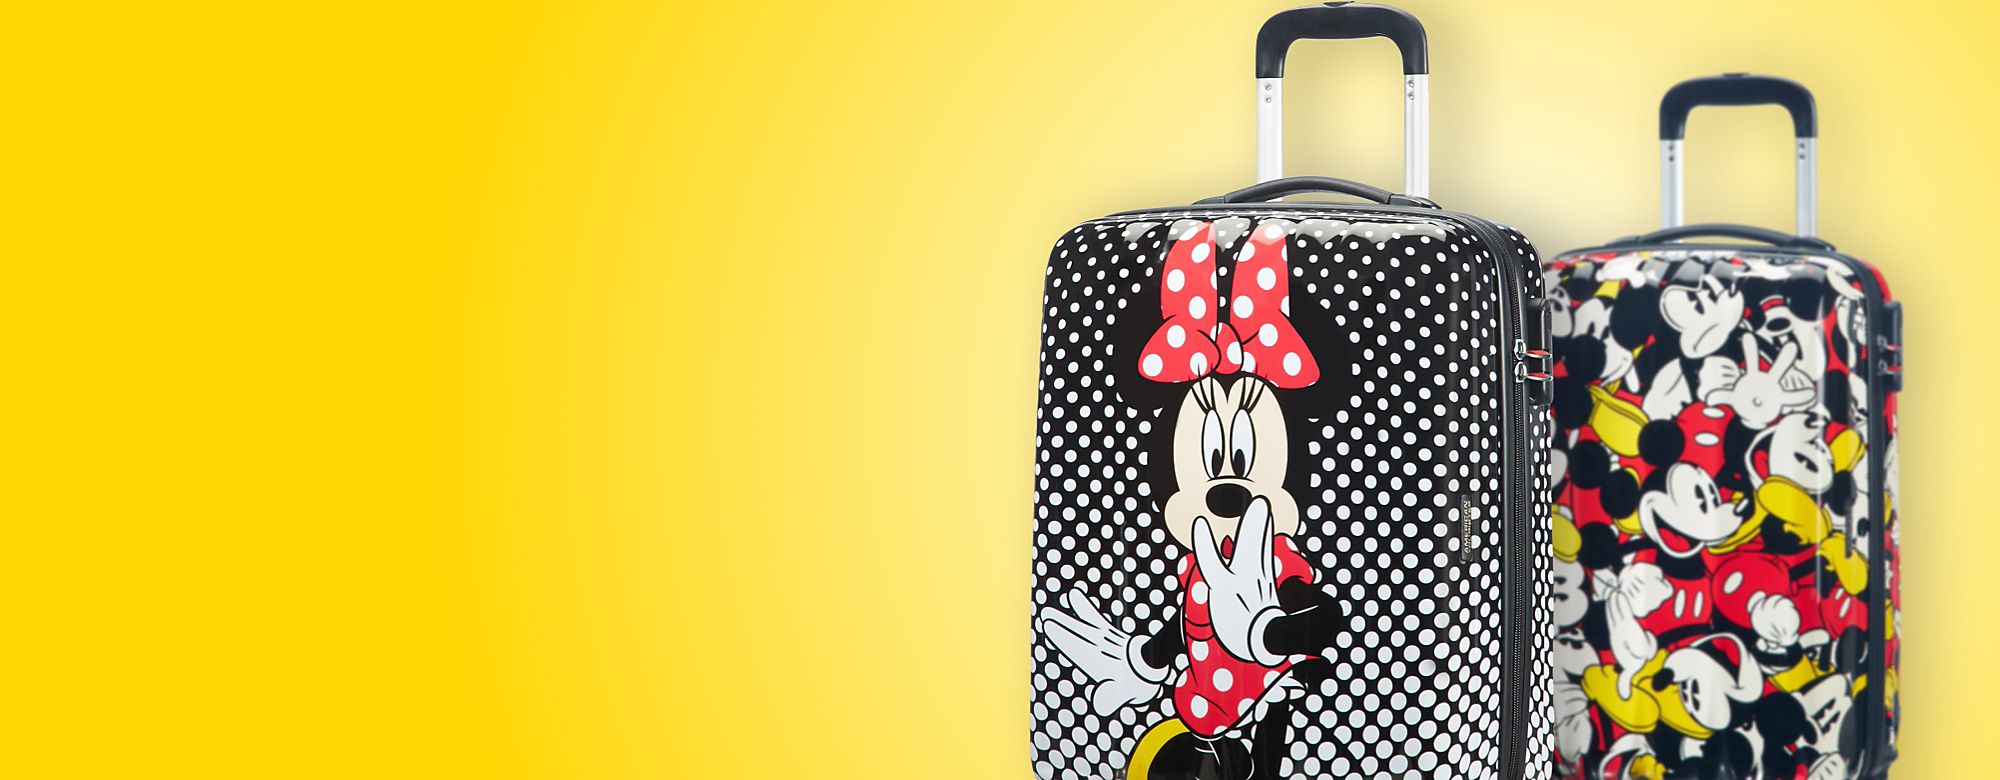 American Tourister *More products from this brand returning soon